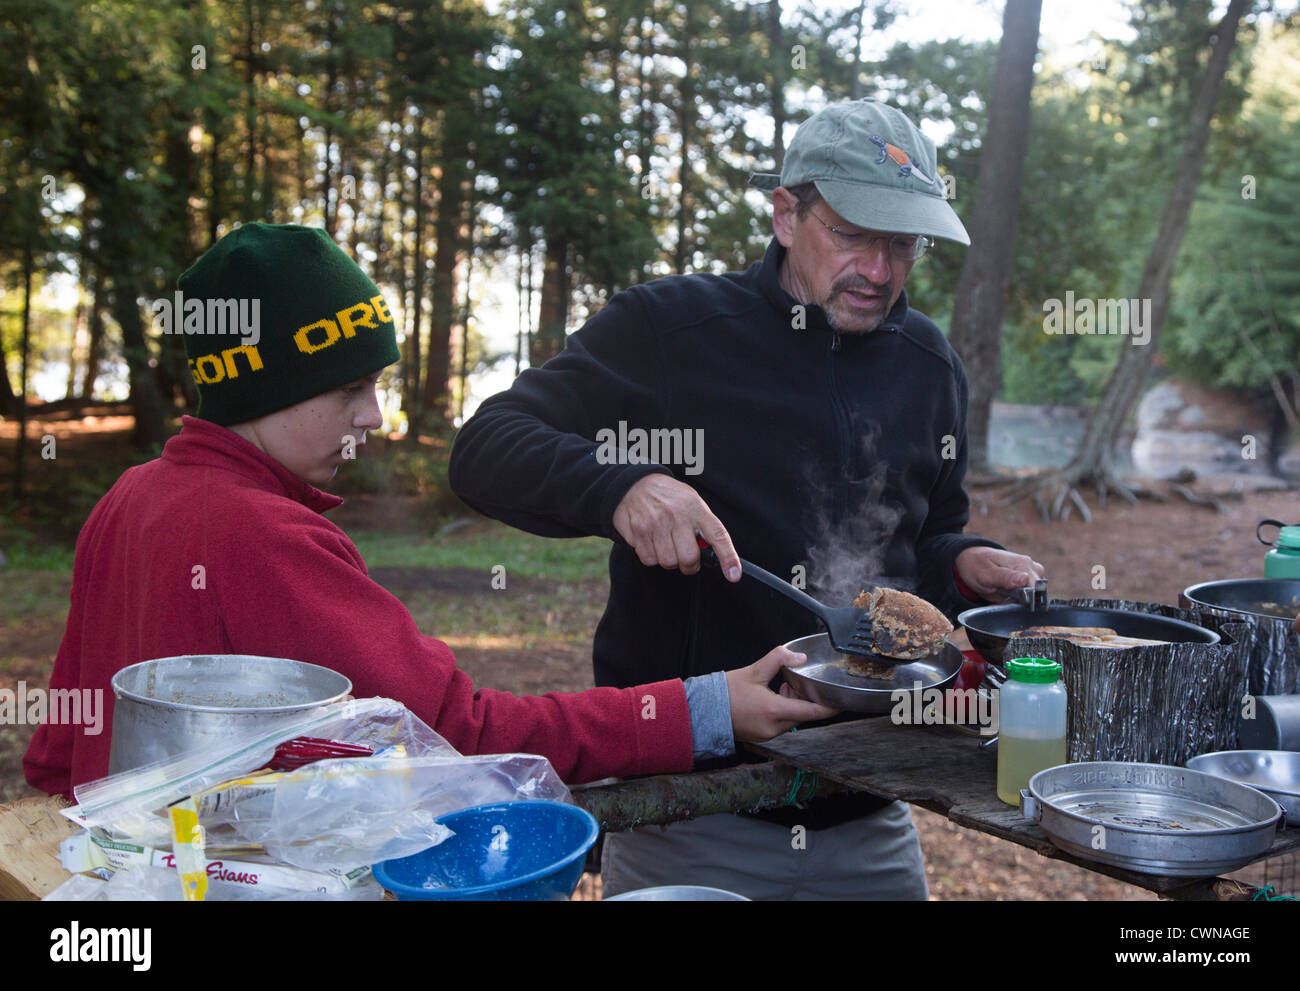 Algonquin Provincial Park, Ontario Canada - John West, 65, cooks pancakes for his son Joey, 13, during a canoe trip. - Stock Image